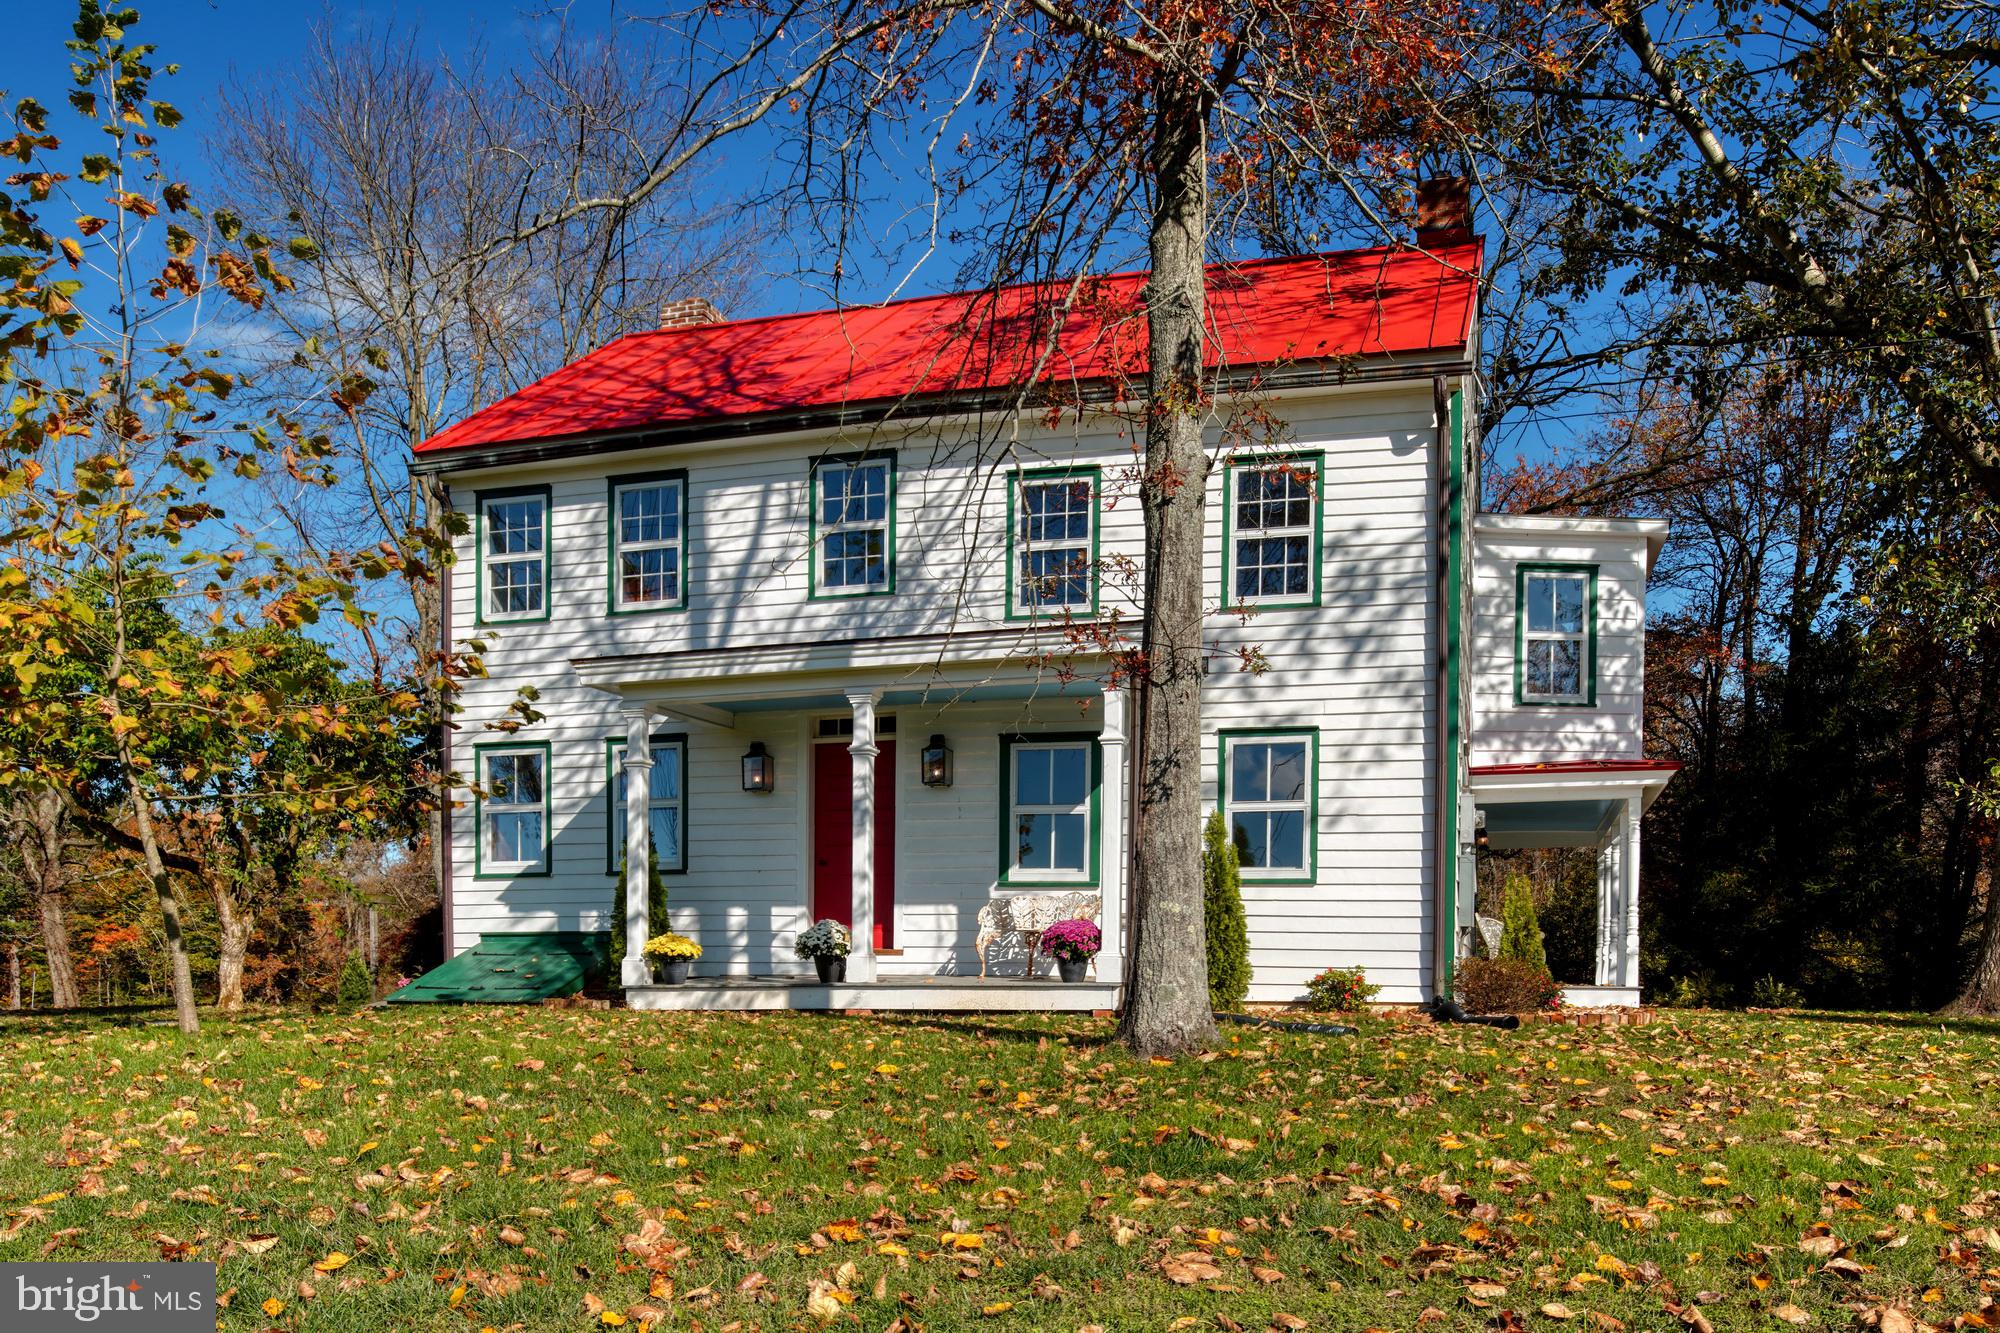 42 CHESTERFIELD GEORGETOWN ROAD, CHESTERFIELD, NJ 08515